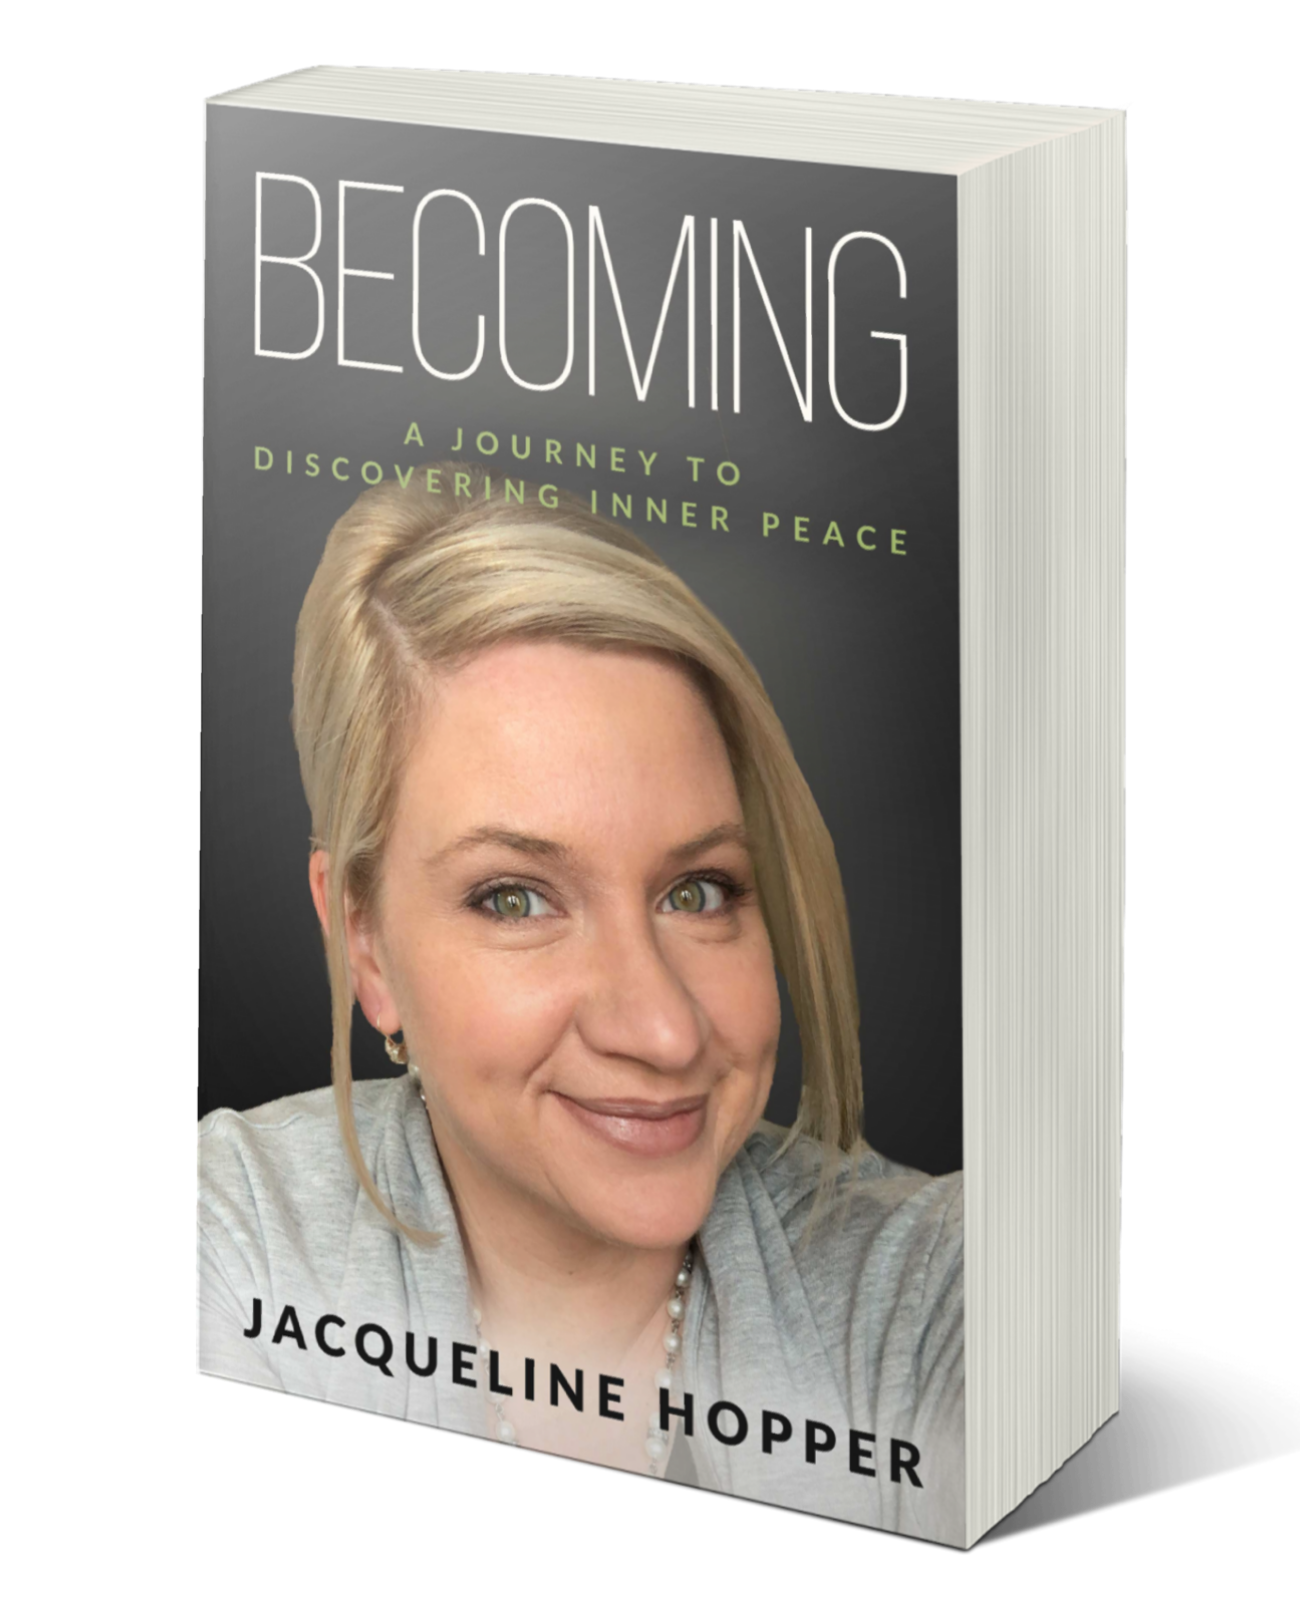 Becoming book cover